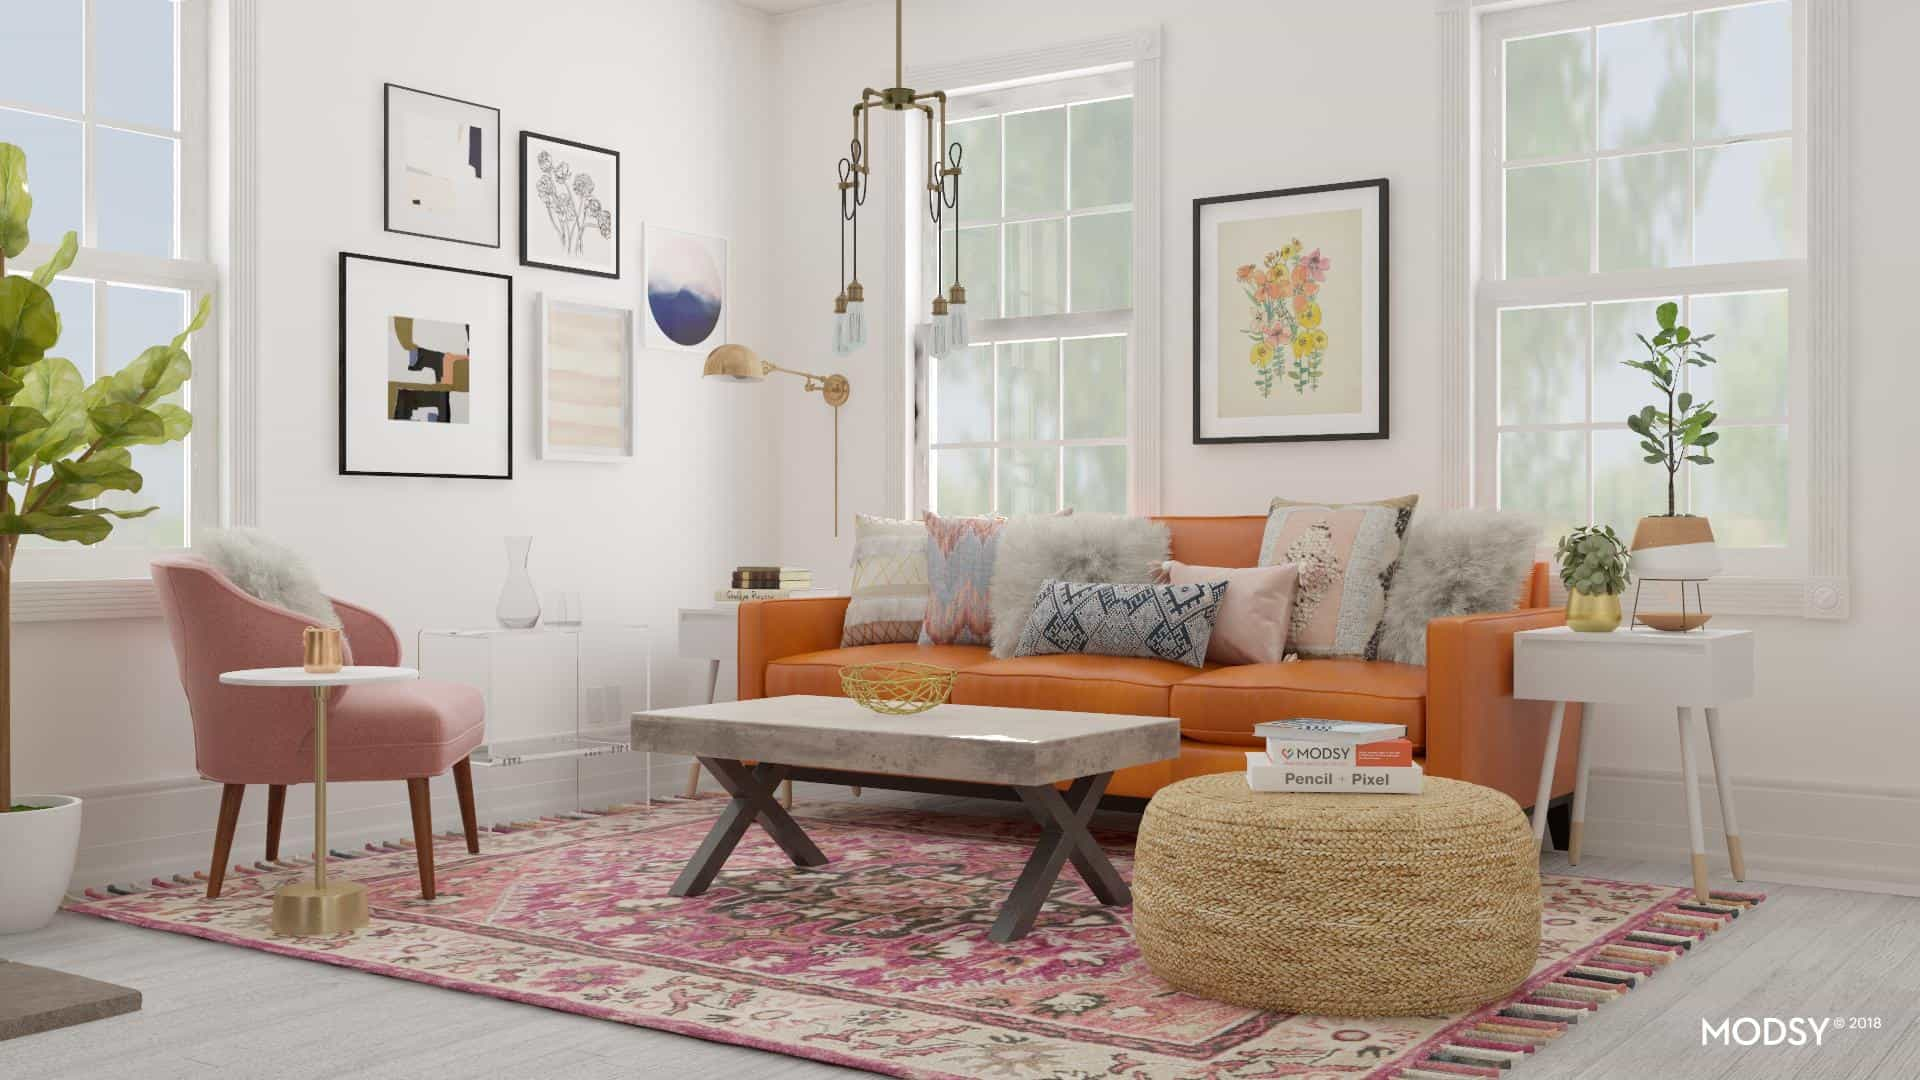 Edesign Review. Have You Ever Thought About Paying For Virtual Interior  Design Services So Your